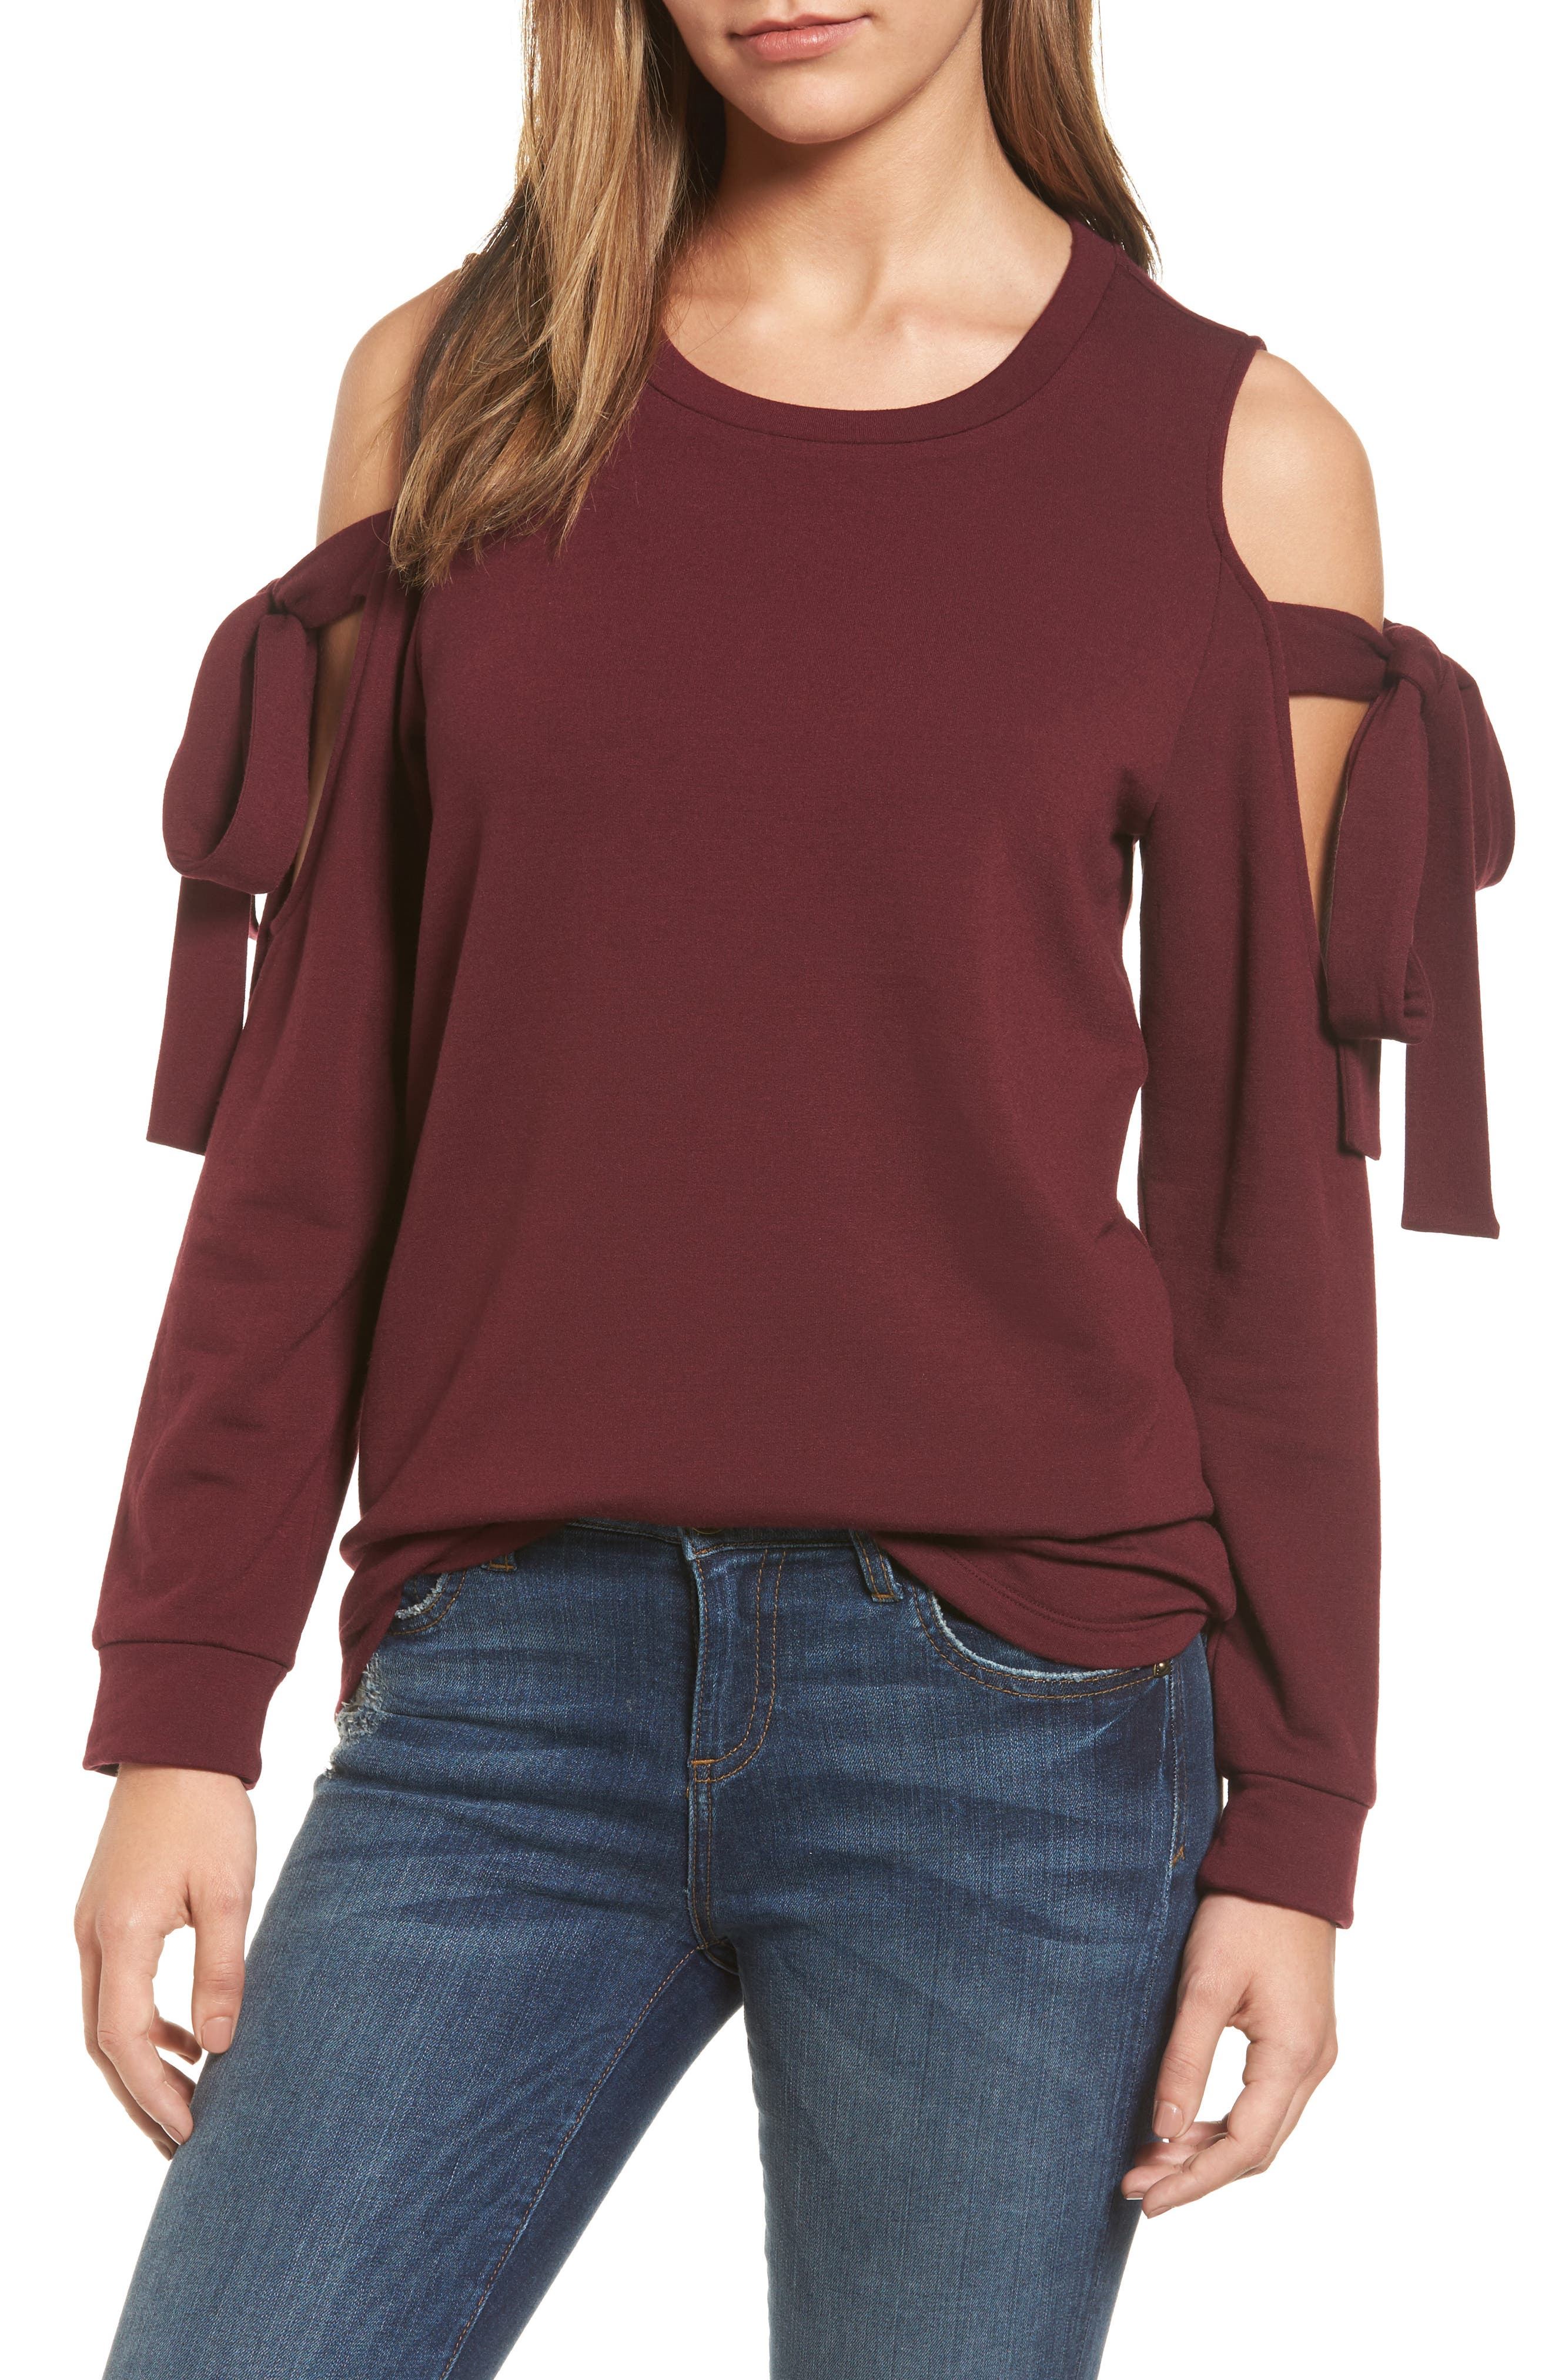 Main Image - Pleione Cold Shoulder Tie Sleeve Sweatshirt (Regular & Petite)